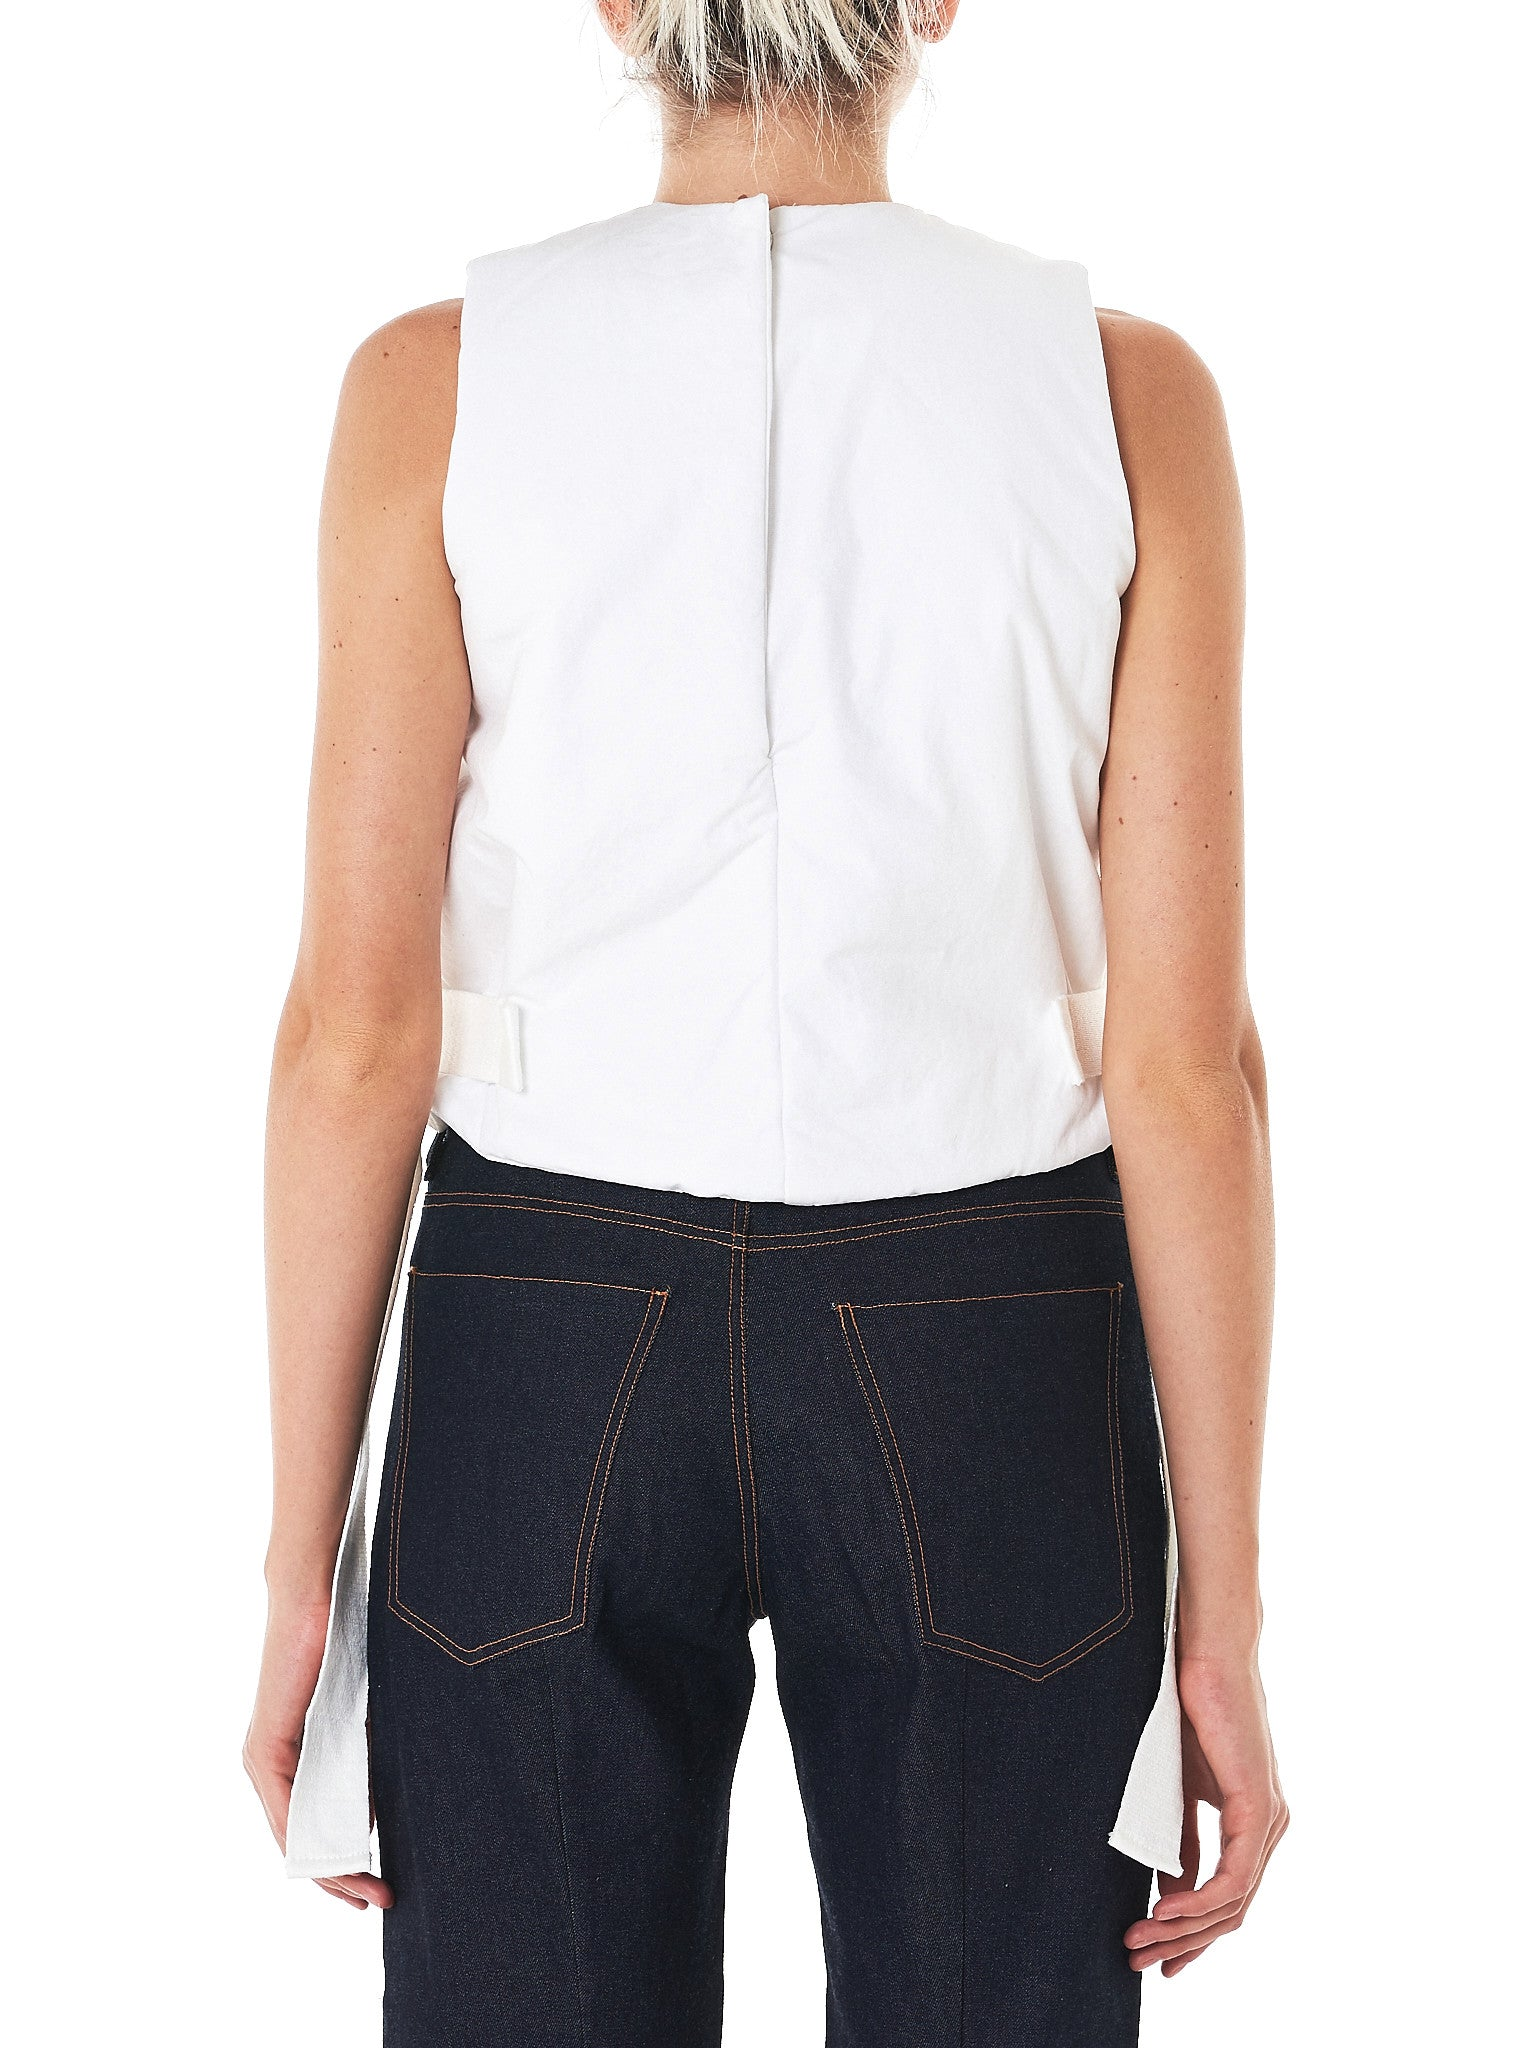 Padded Cotton Vest (17FW-3-WHITE)